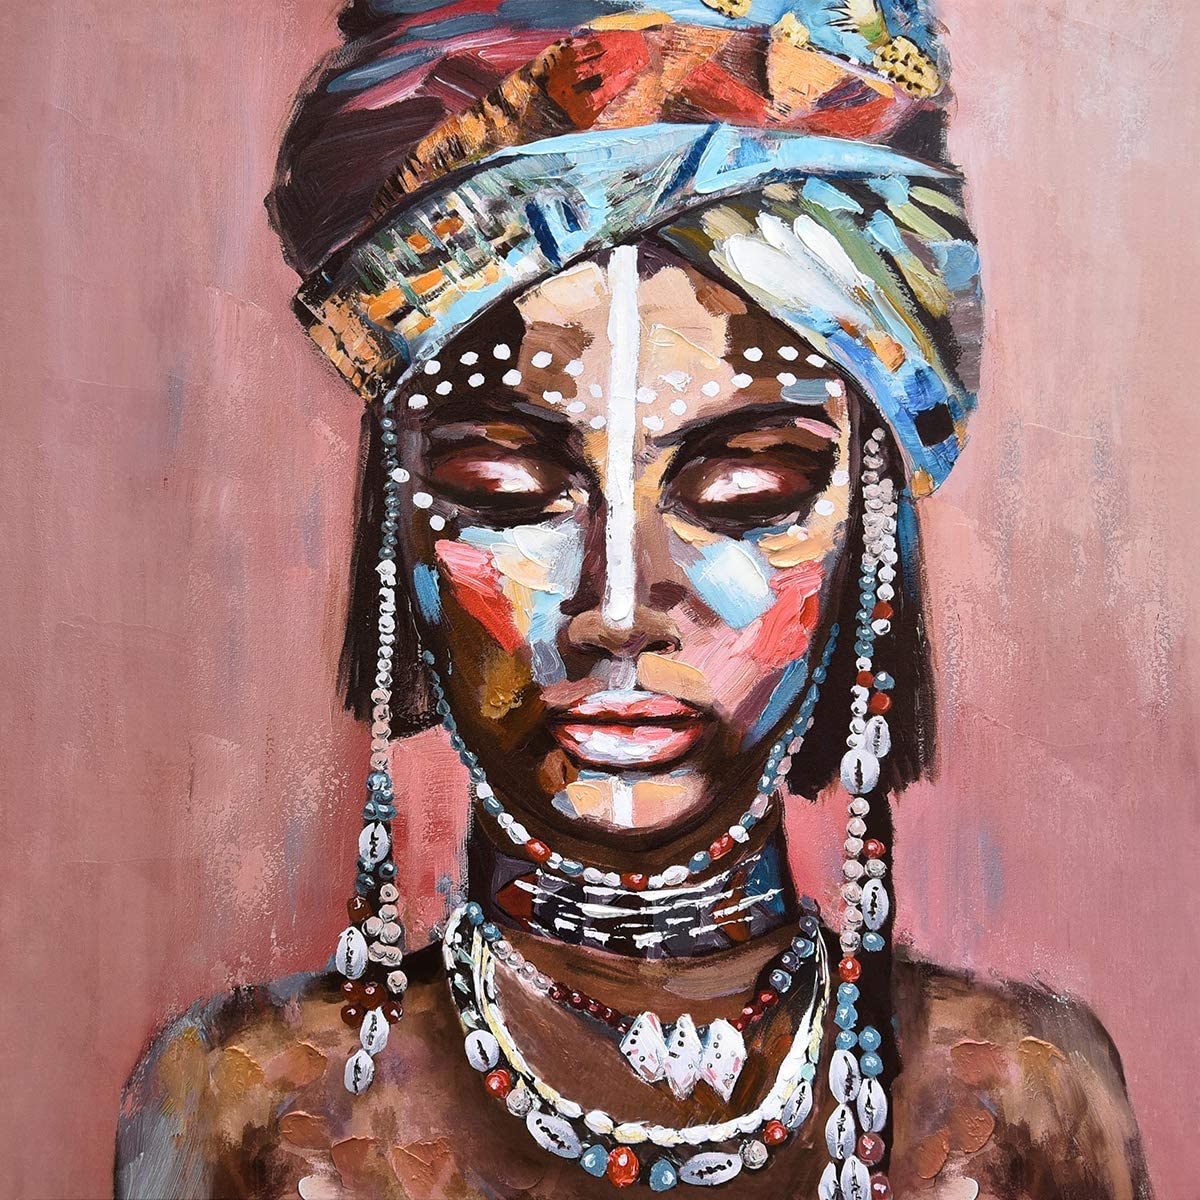 Large Canvas Prints Wall Art Photo for Home, African American Black Girl Oil Paintings, 3D Hand Painted Colorful Modern Indian Worman Pictures for Bedroom, Living Room, Ready to Hang 36x36 Inches